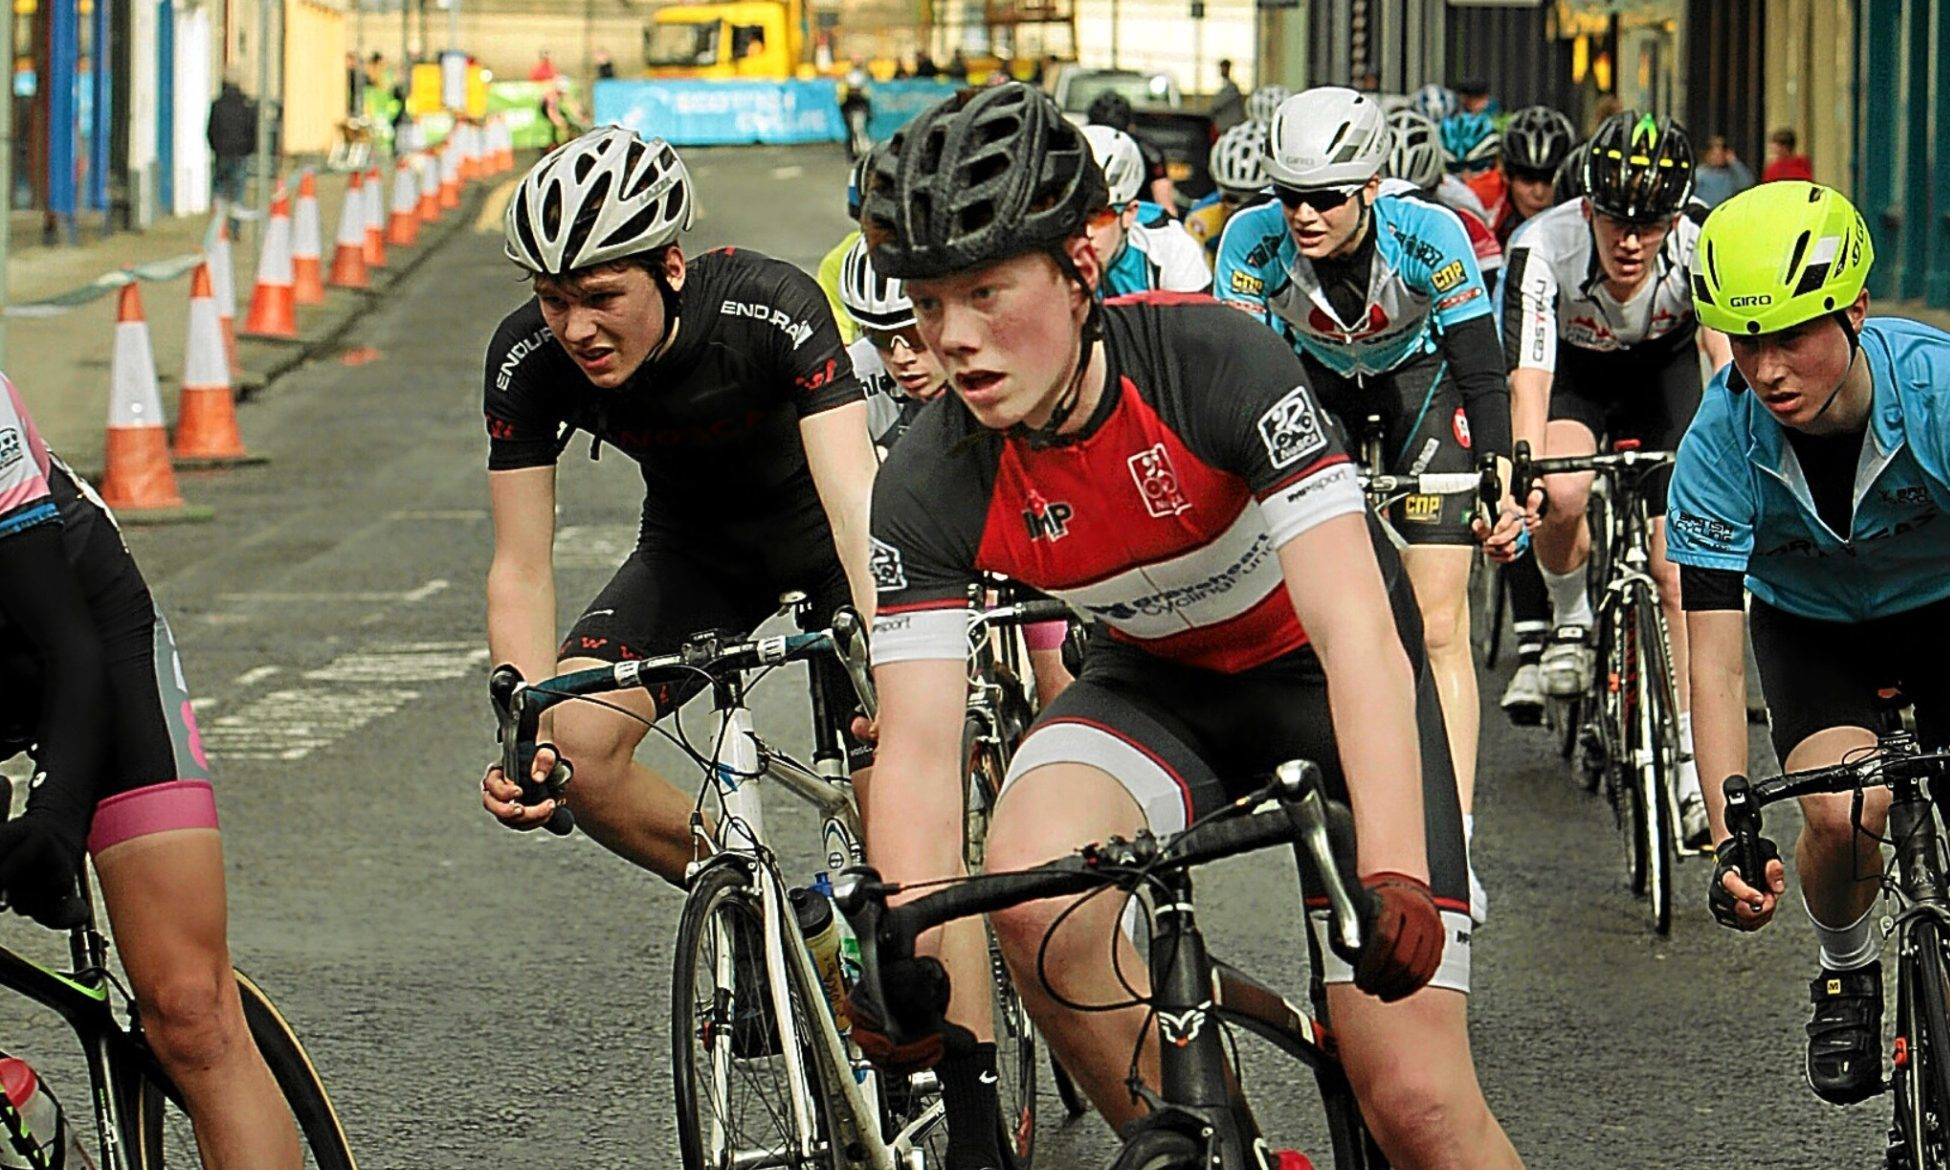 Perth has attracted many major events including the GB Youth Cycling Tour